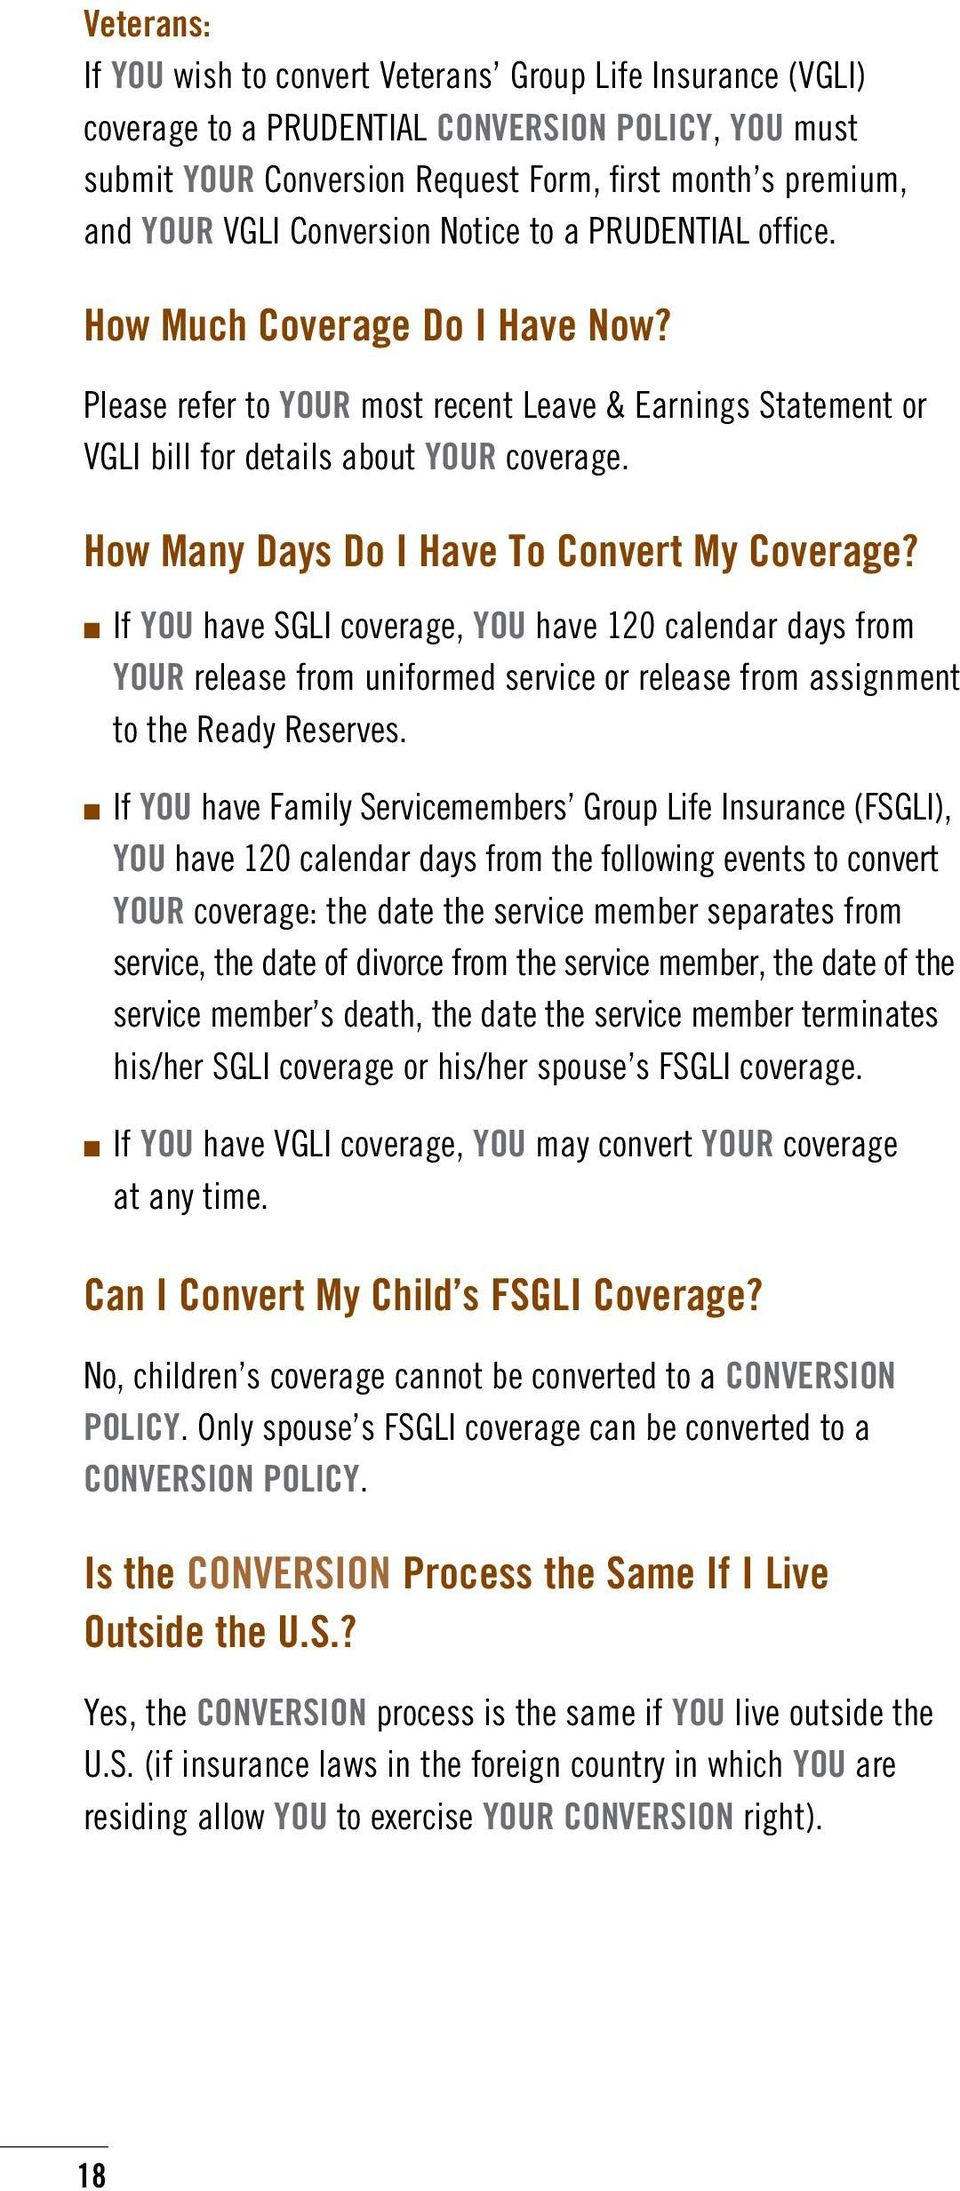 How Many Days Do I Have To Convert My Coverage? If YOU have SGLI coverage, YOU have 120 calendar days from YOUR release from uniformed service or release from assignment to the Ready Reserves.